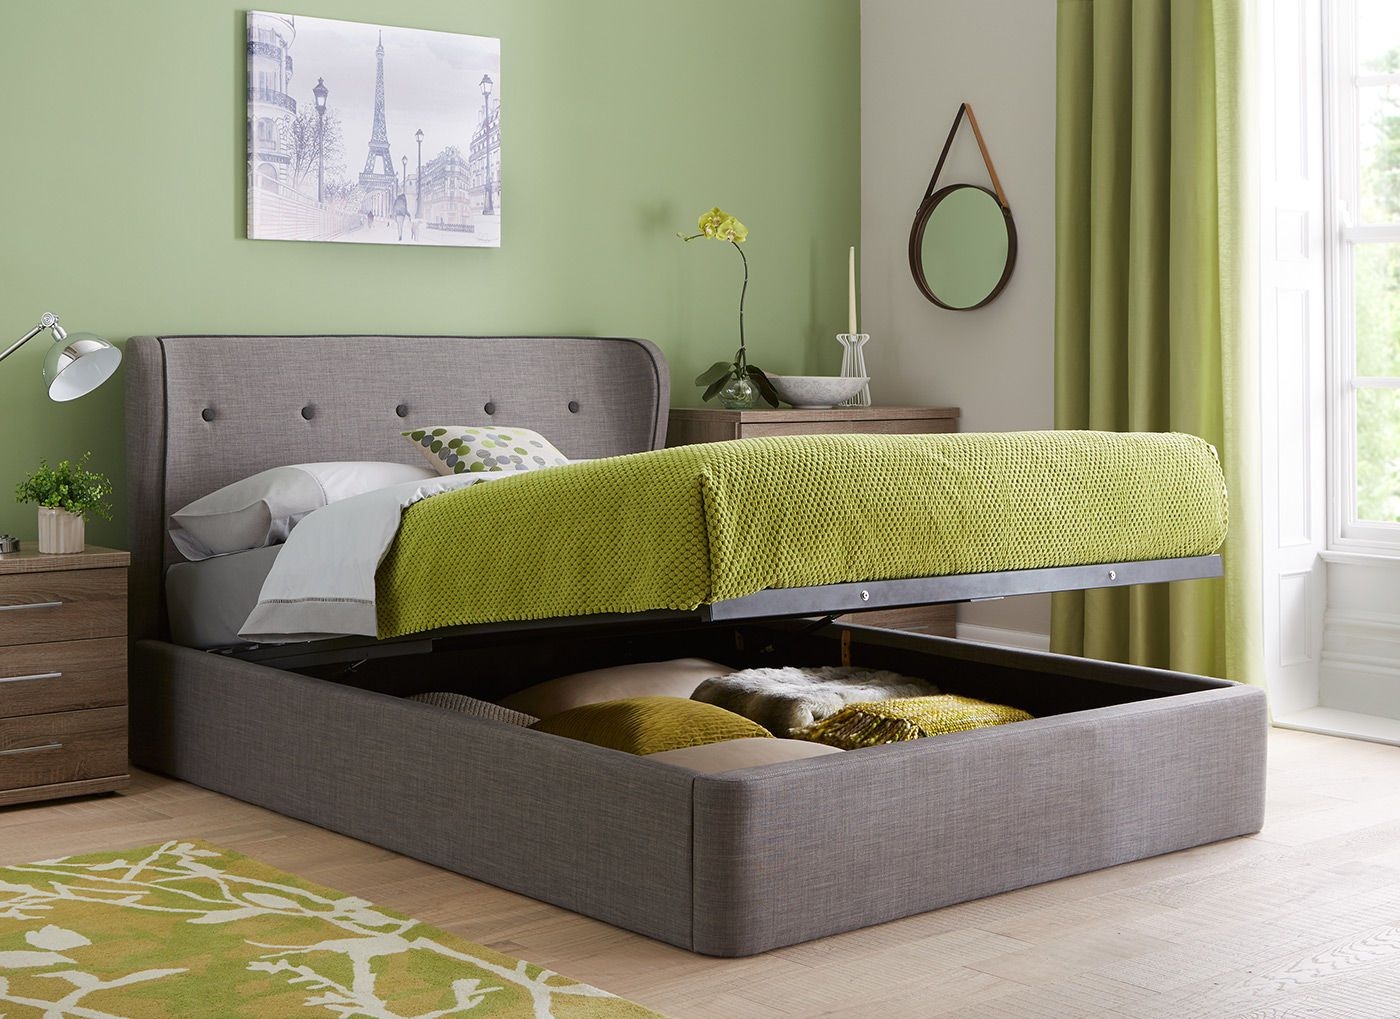 Cooper Charcoal Grey Fabric Ottoman Bed Frame - Cooper Charcoal Grey Fabric Ottoman Bed Frame .tyxgb76aj